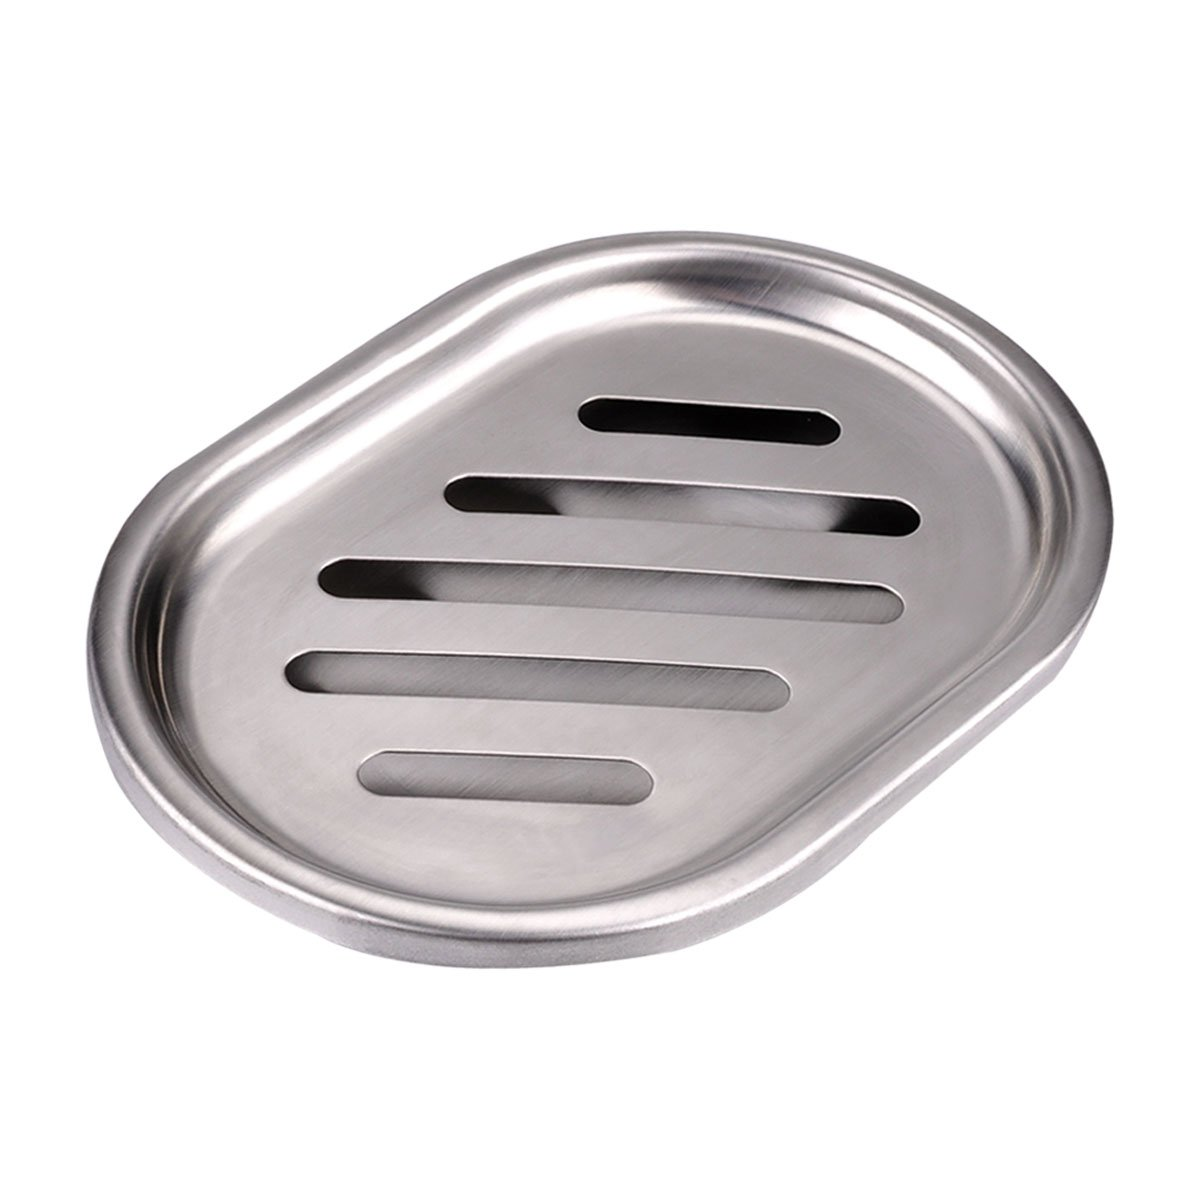 Double-deck Separable Stainless Steel Soap Dish, Soap Case Holder For Sponges, Scrubber, Soap